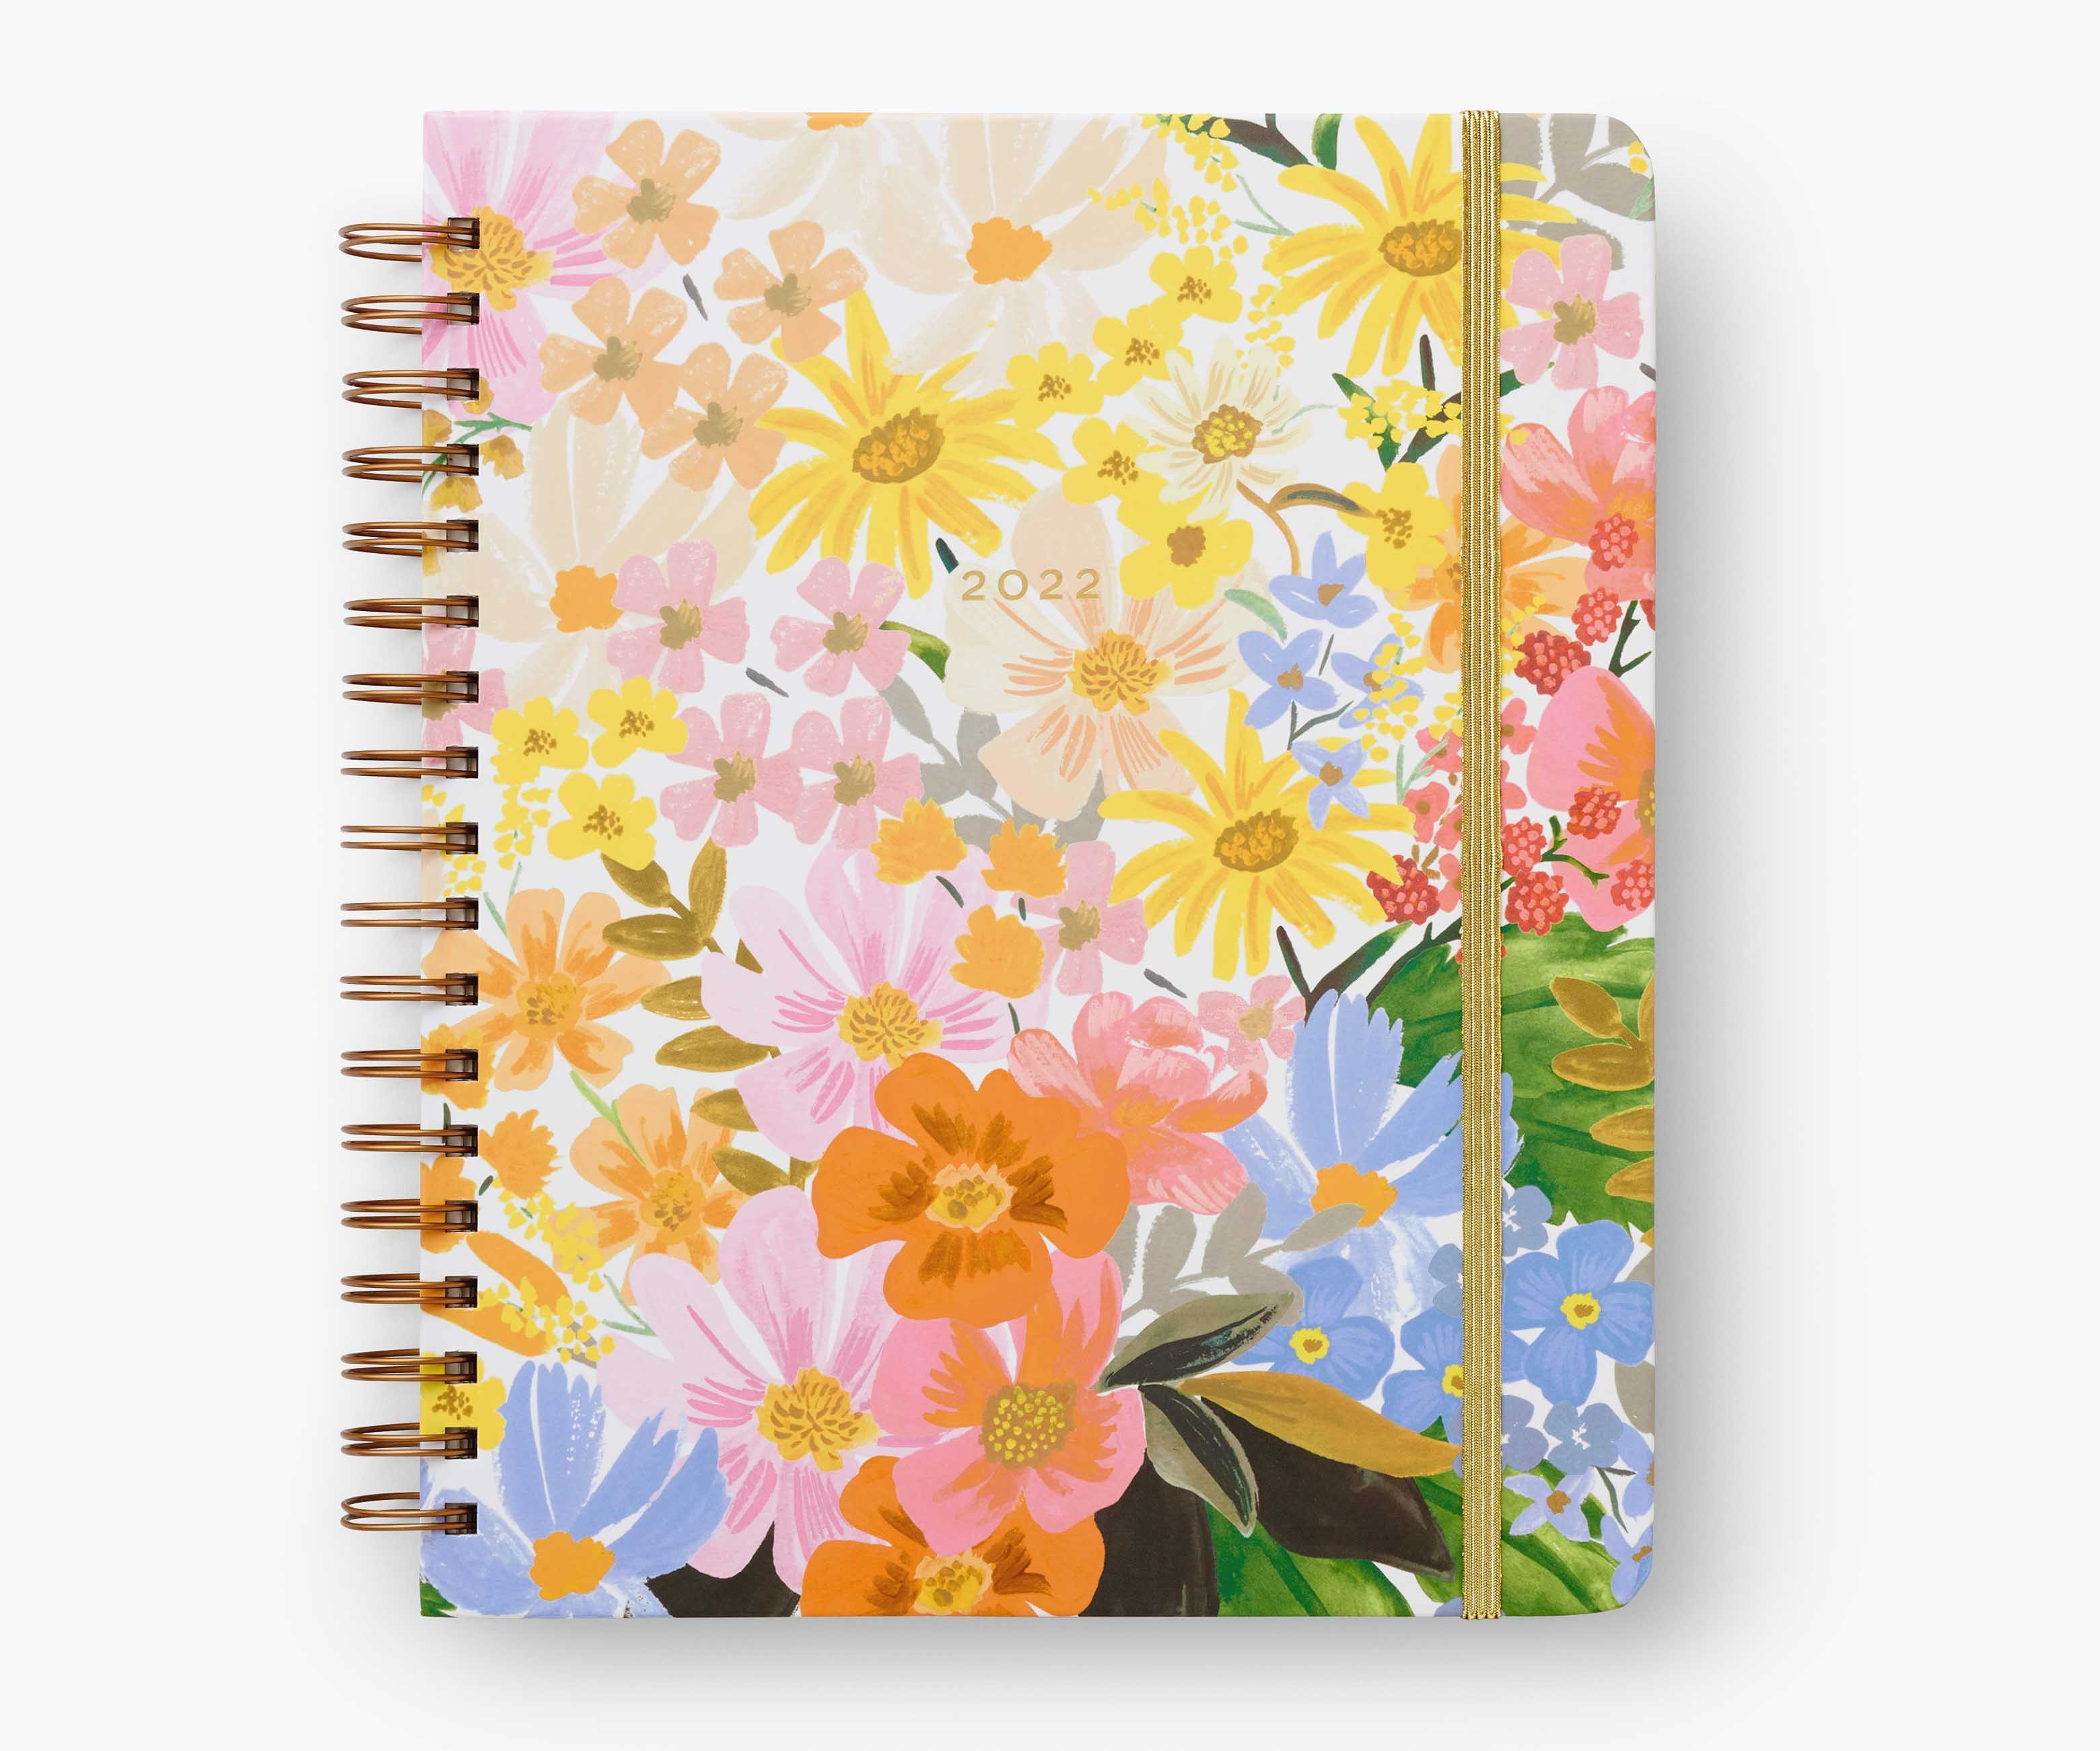 2022 17-Month Large Planner | Rifle Paper Co.